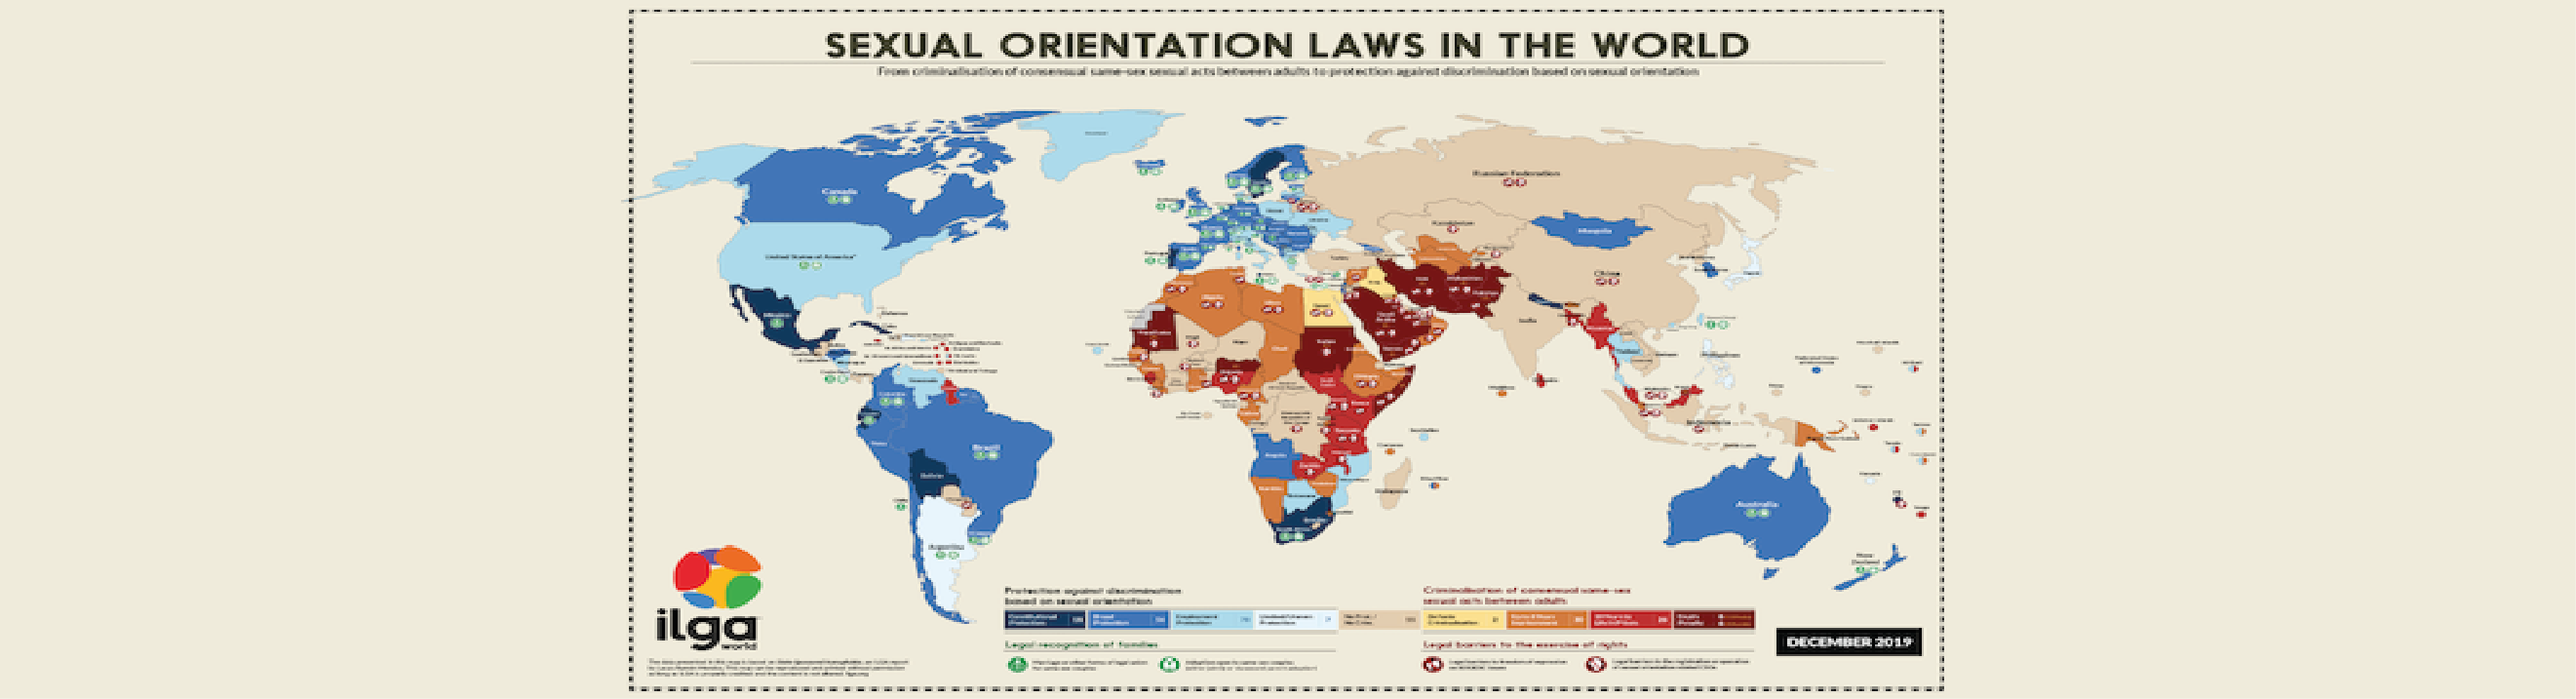 Maps - Sexual orientation laws